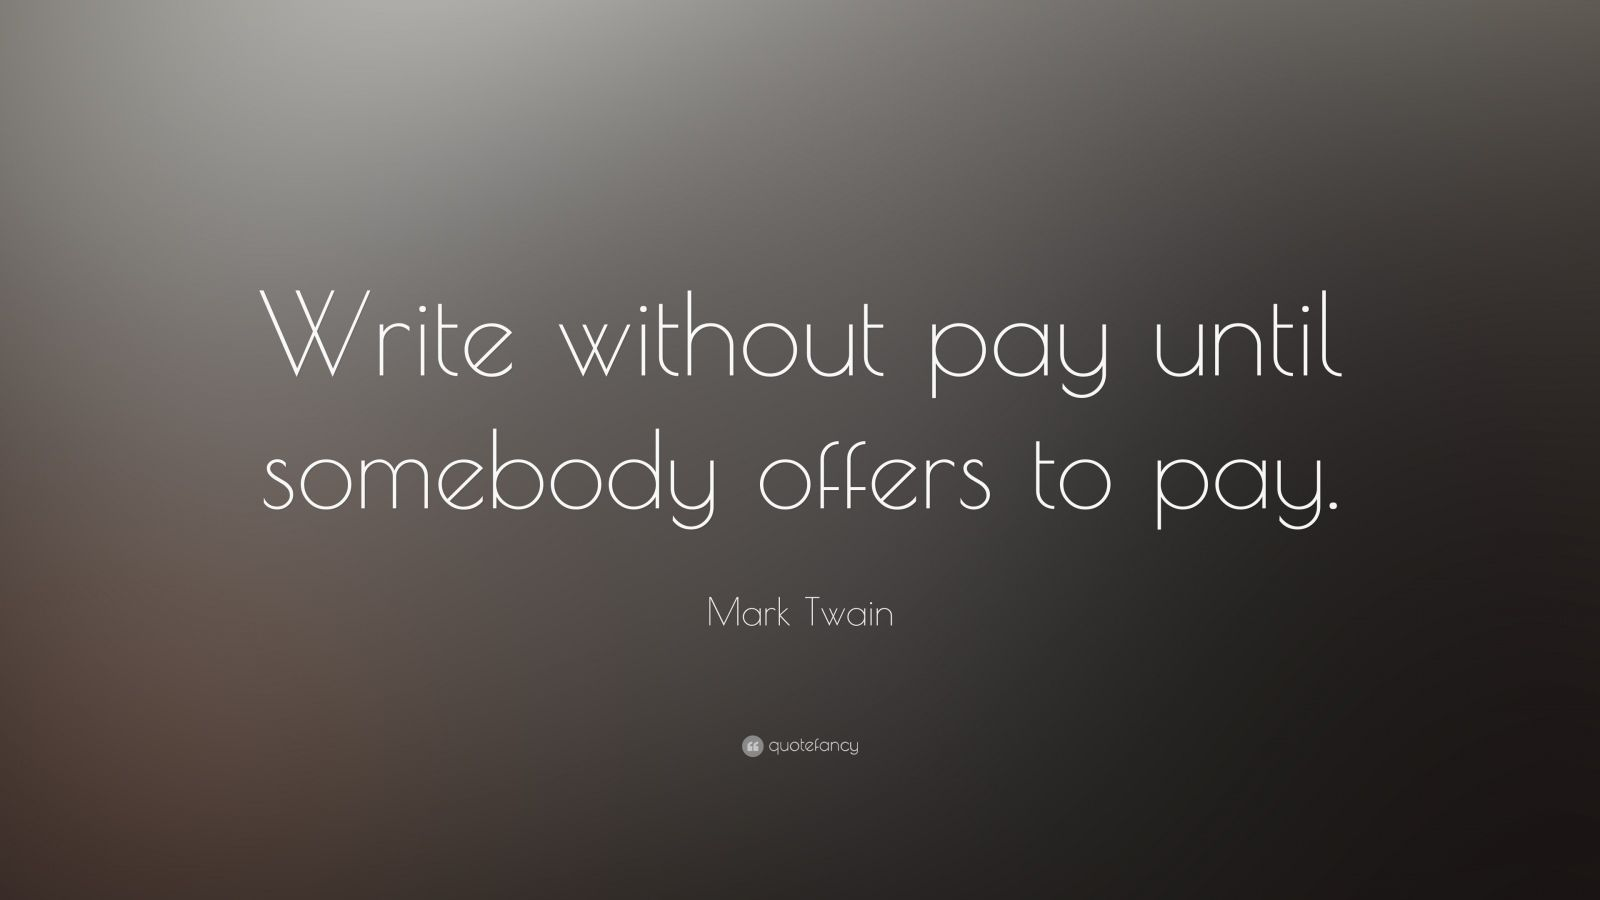 mark twain quotes on writing Browse famous mark twain quotes about writing on searchquotescom.